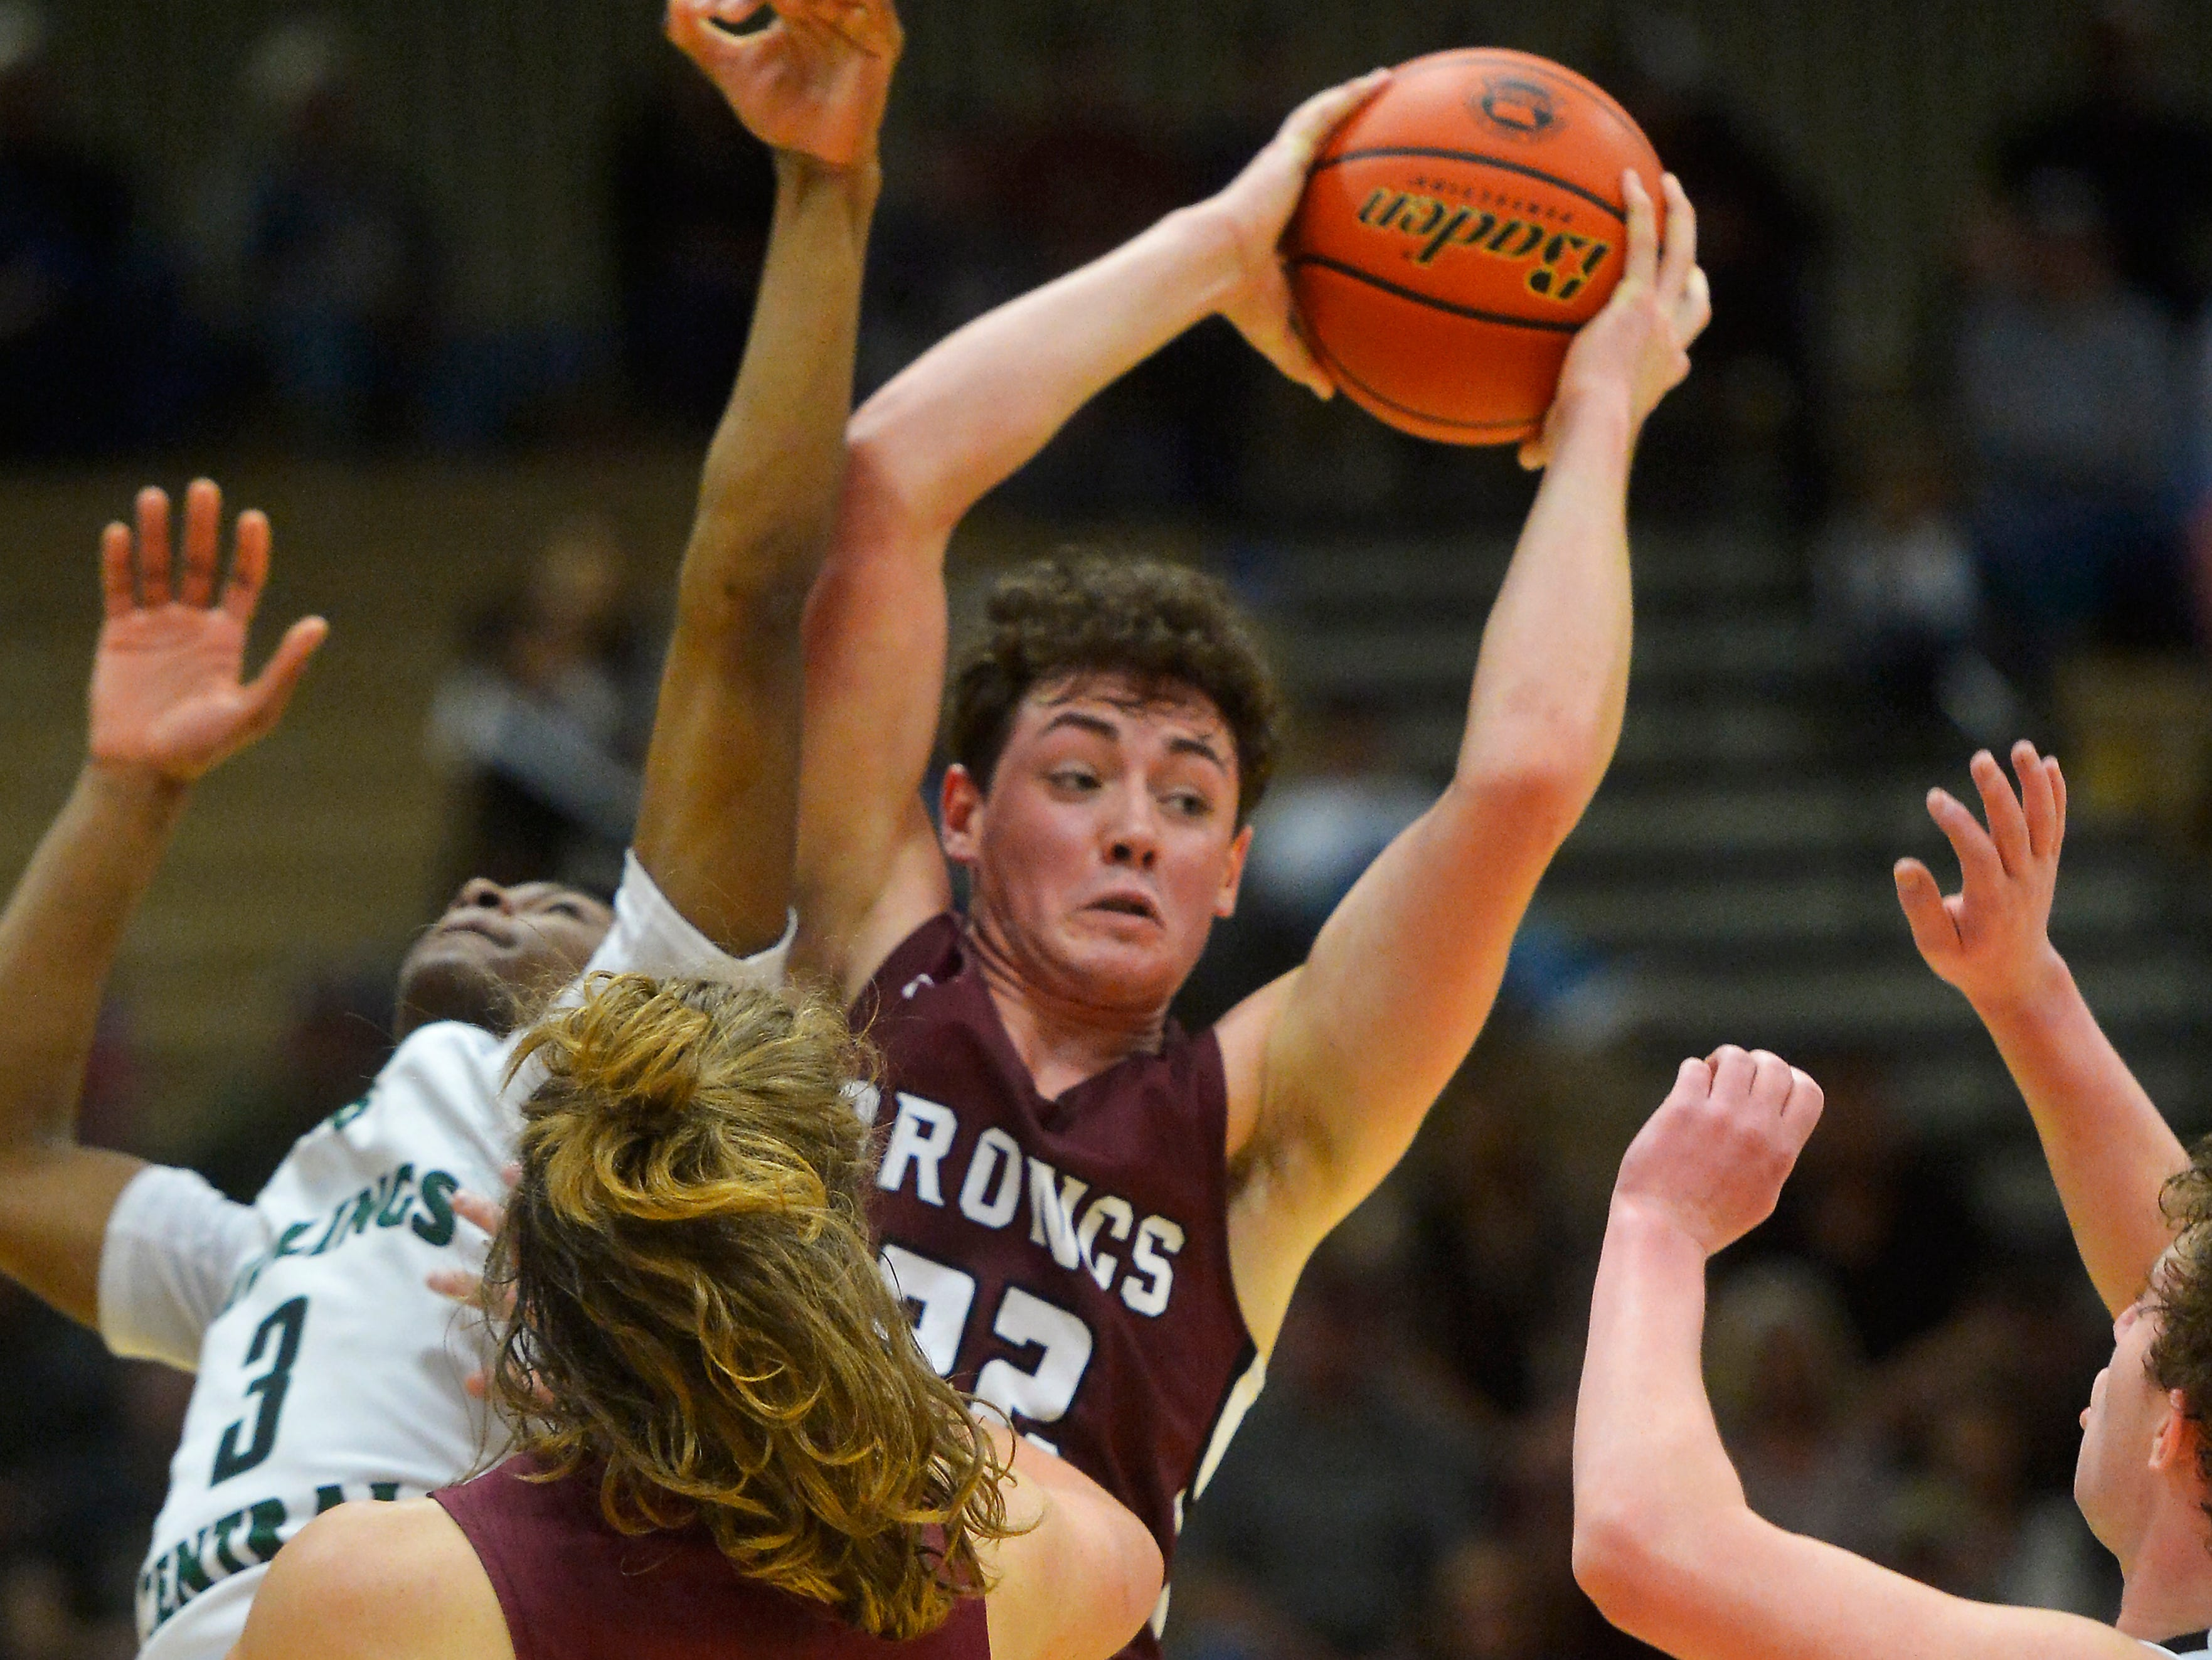 Hamilton's Hunter Omlid grabs a rebound during the semifinal game of the State Class A Basketball Tournament in the Four Seasons Arena, Friday.